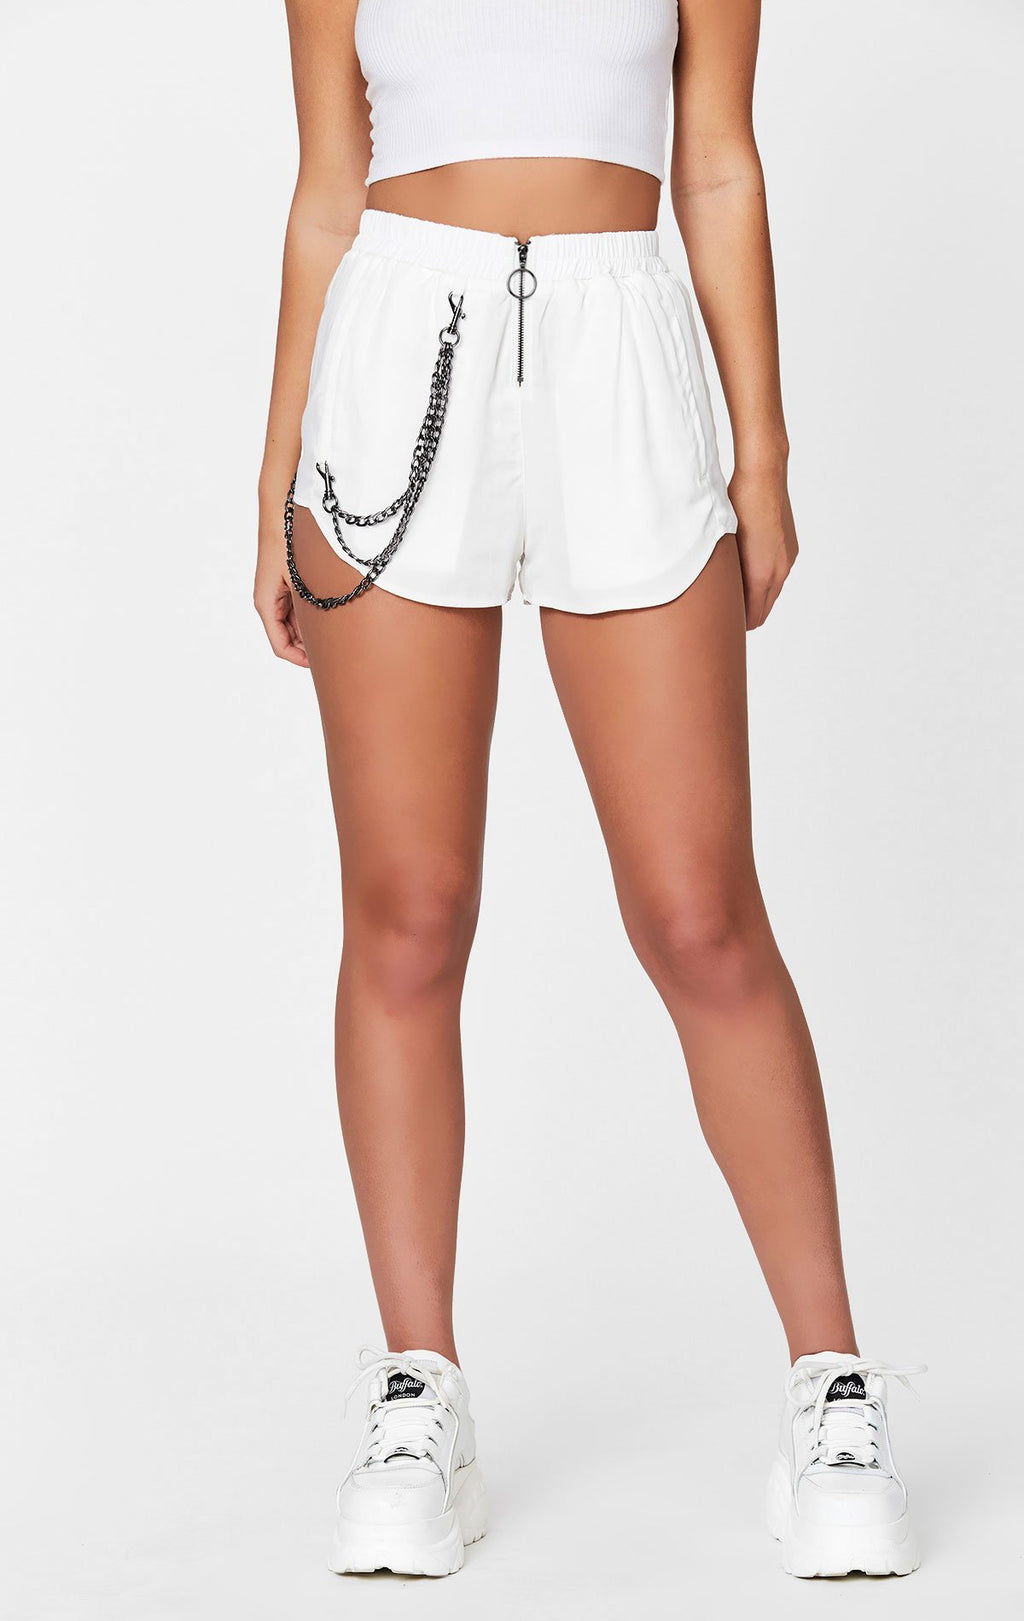 MAGS & PYE ZIP FRONT BOXER SHORT WITH CHAIN DETAIL FRONT